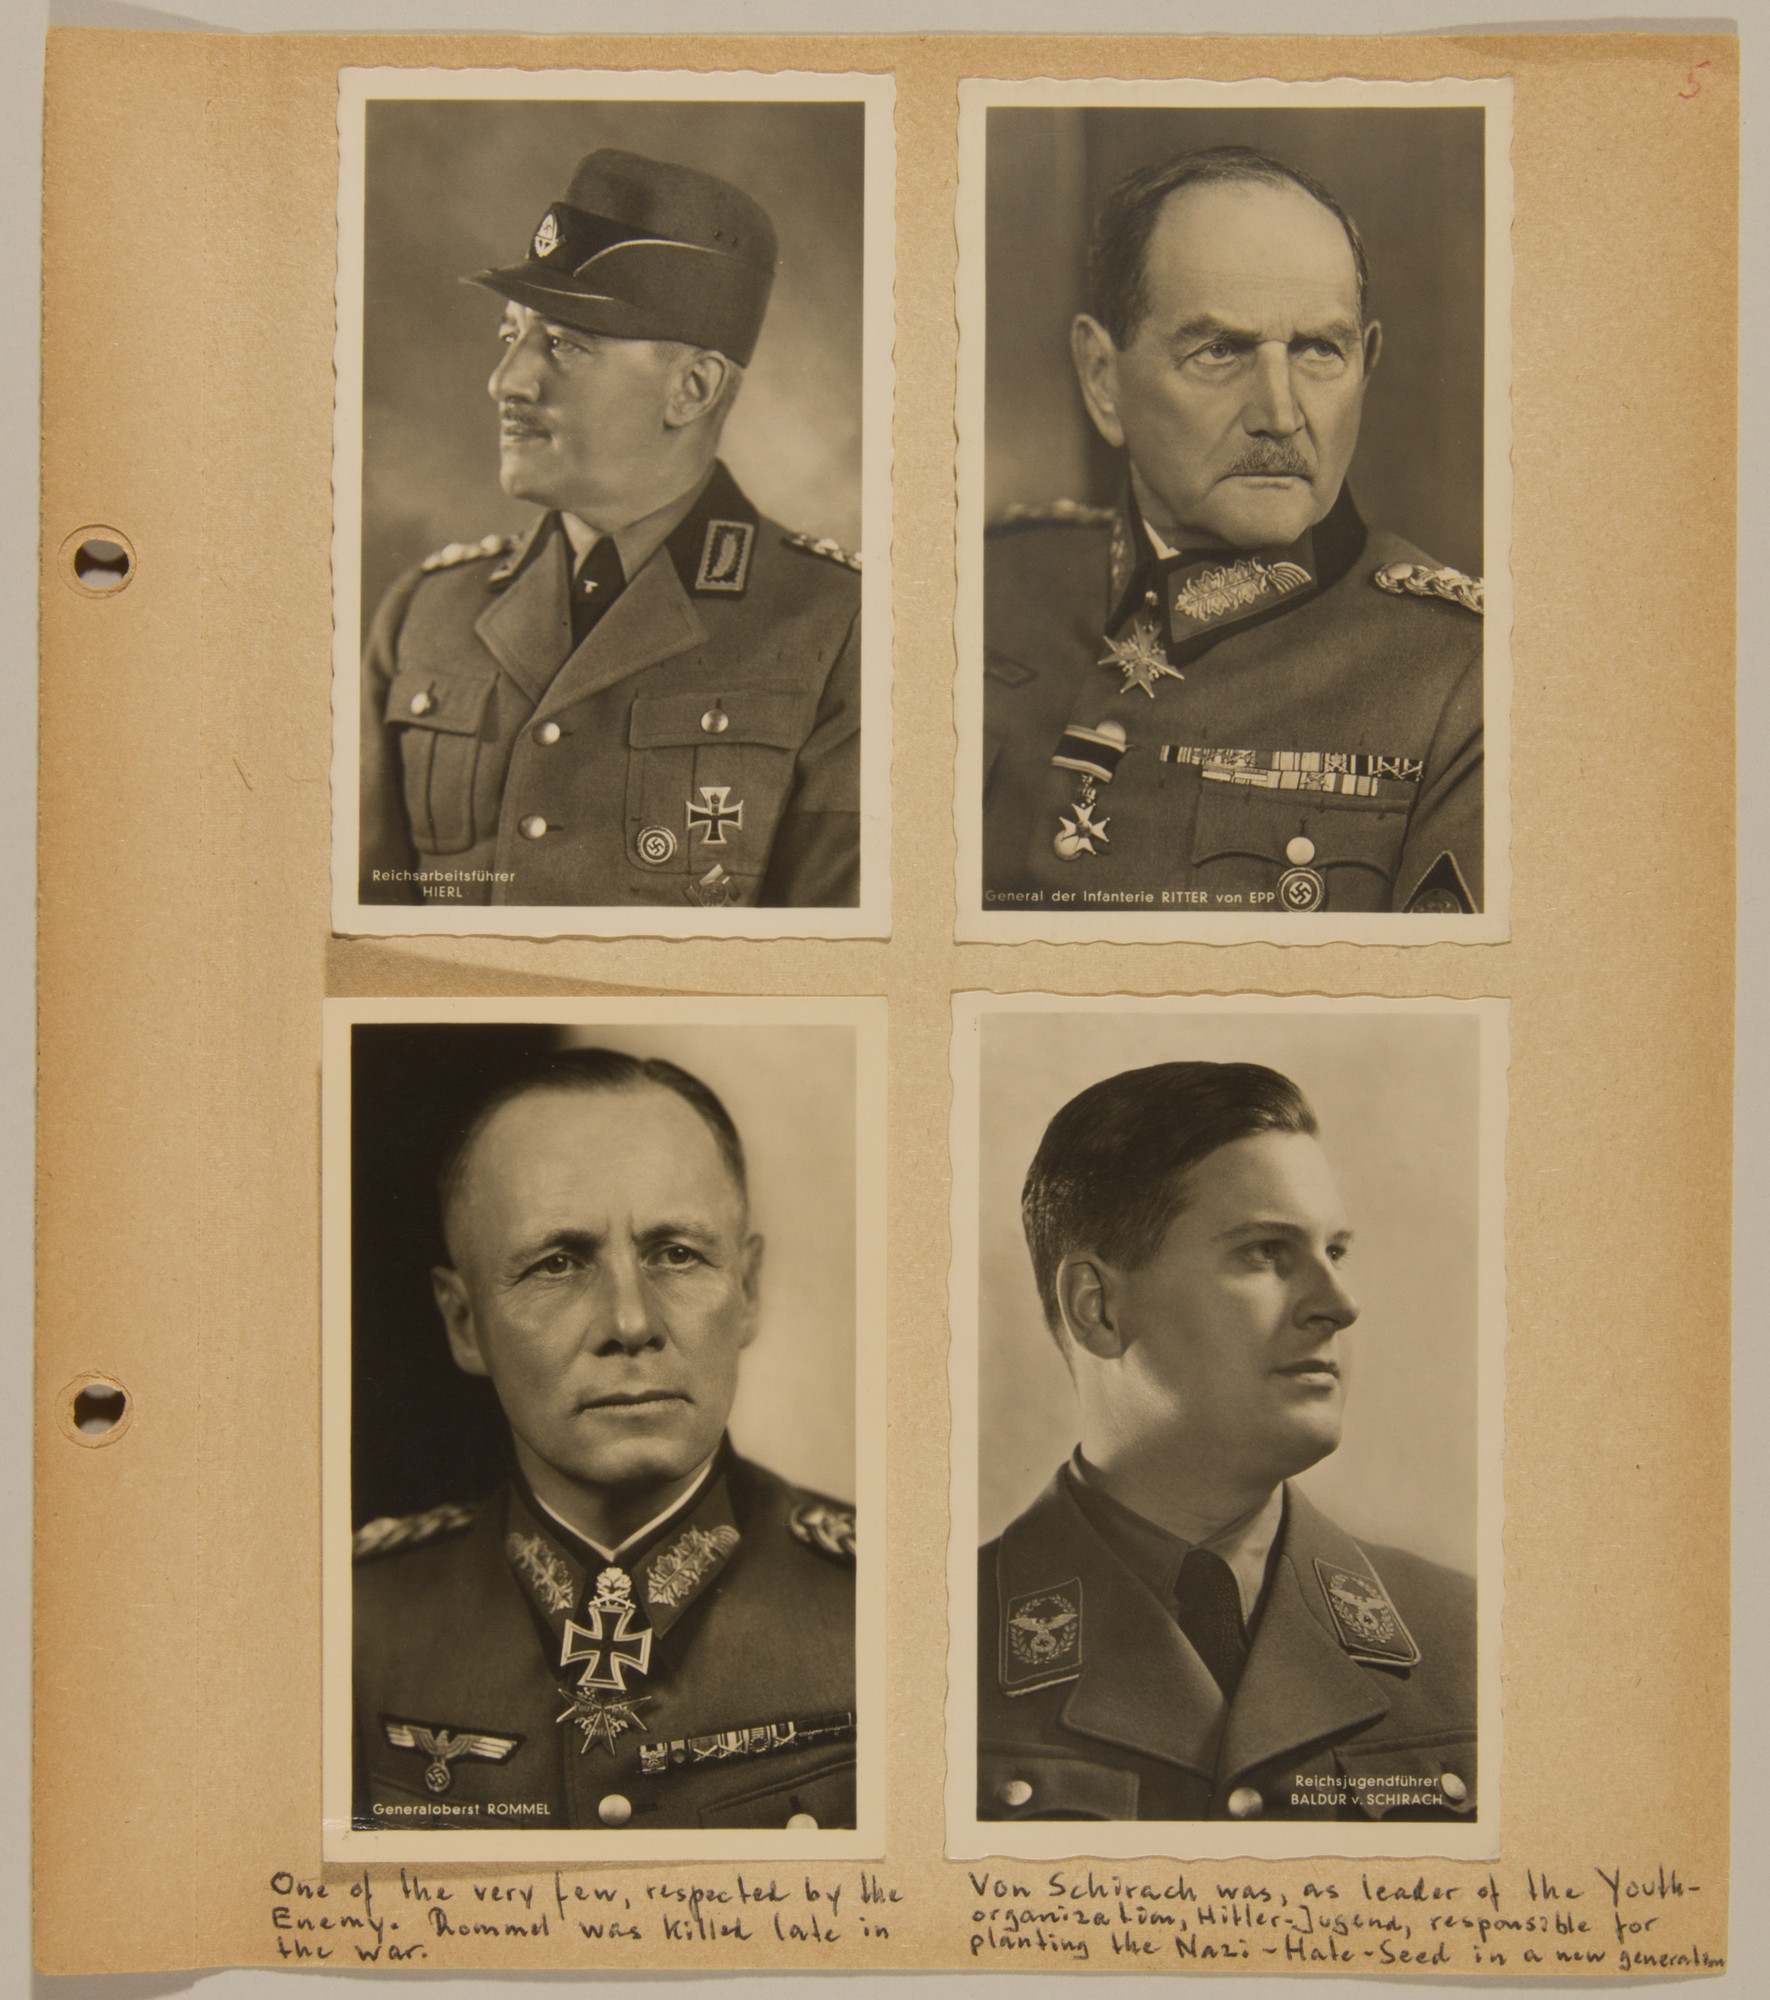 Page from volume four of a set of scrapbooks compiled by Bjorn Sibbern, a Danish policeman and resistance member, documenting the German occupation of Denmark.  This page contains photographs of Rommel, von Schirach, Hierl and von Epp.